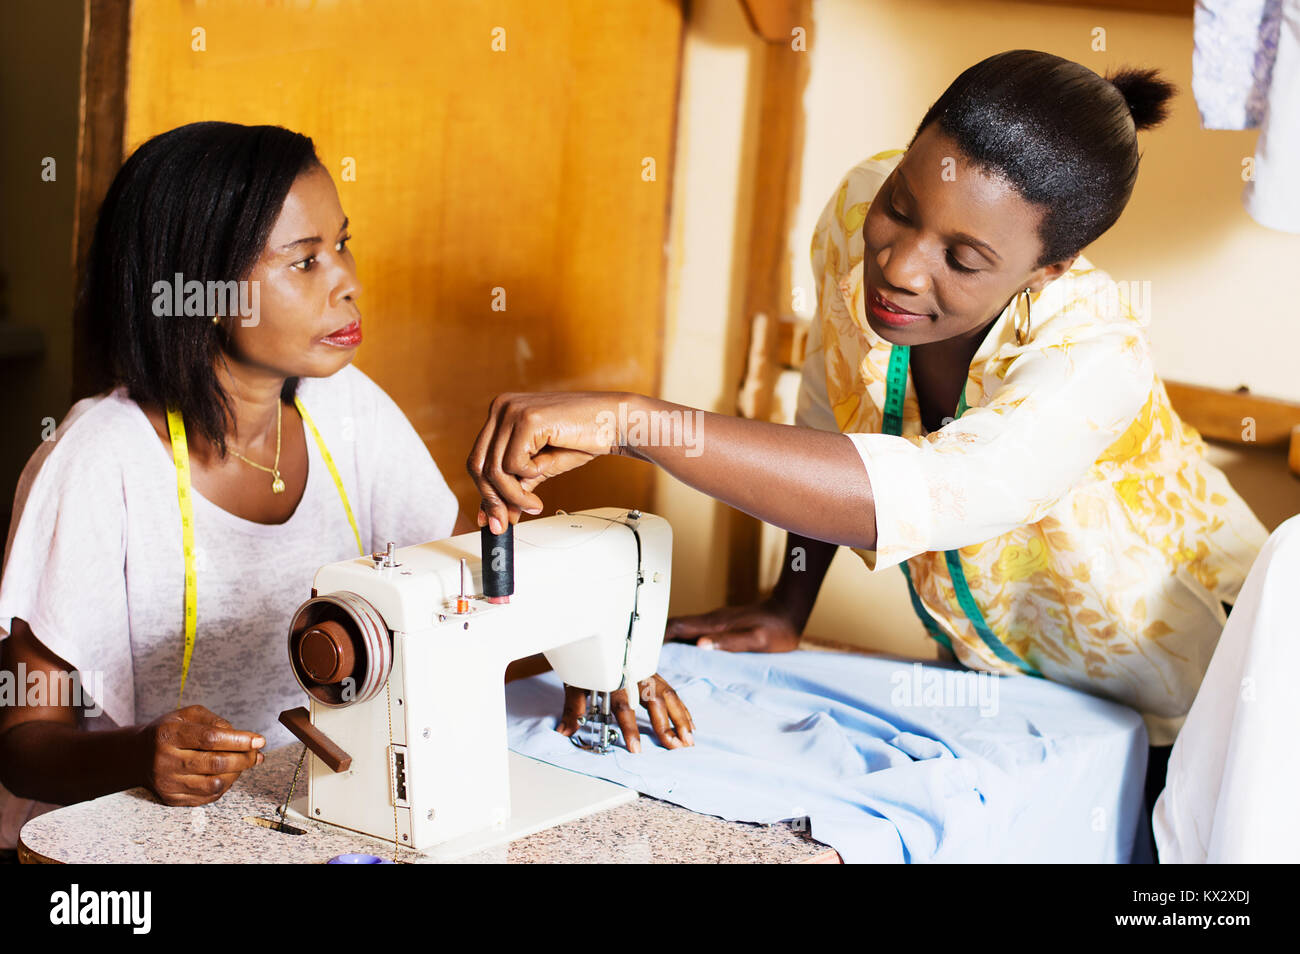 professional seamstress helps his student in practice. - Stock Image